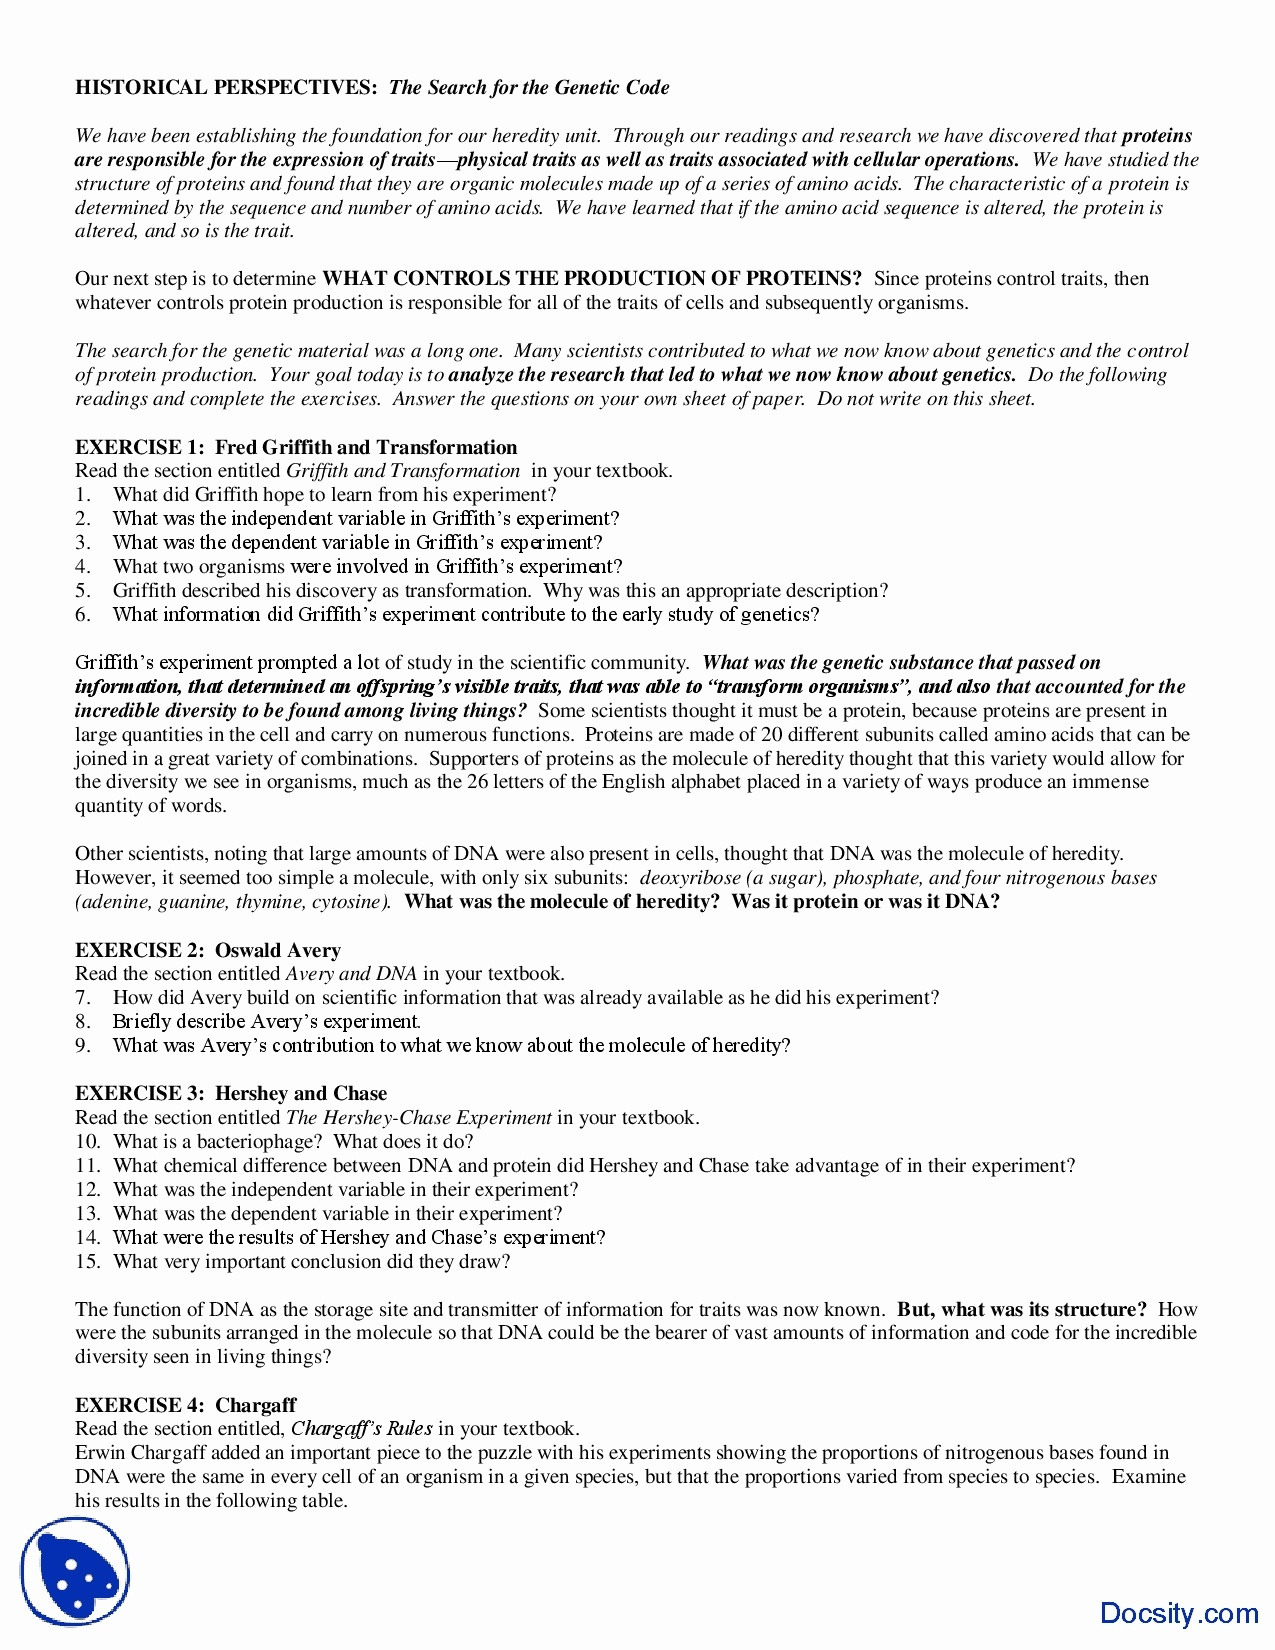 Dna The Molecule Of Heredity Worksheet Answers — db excel.com